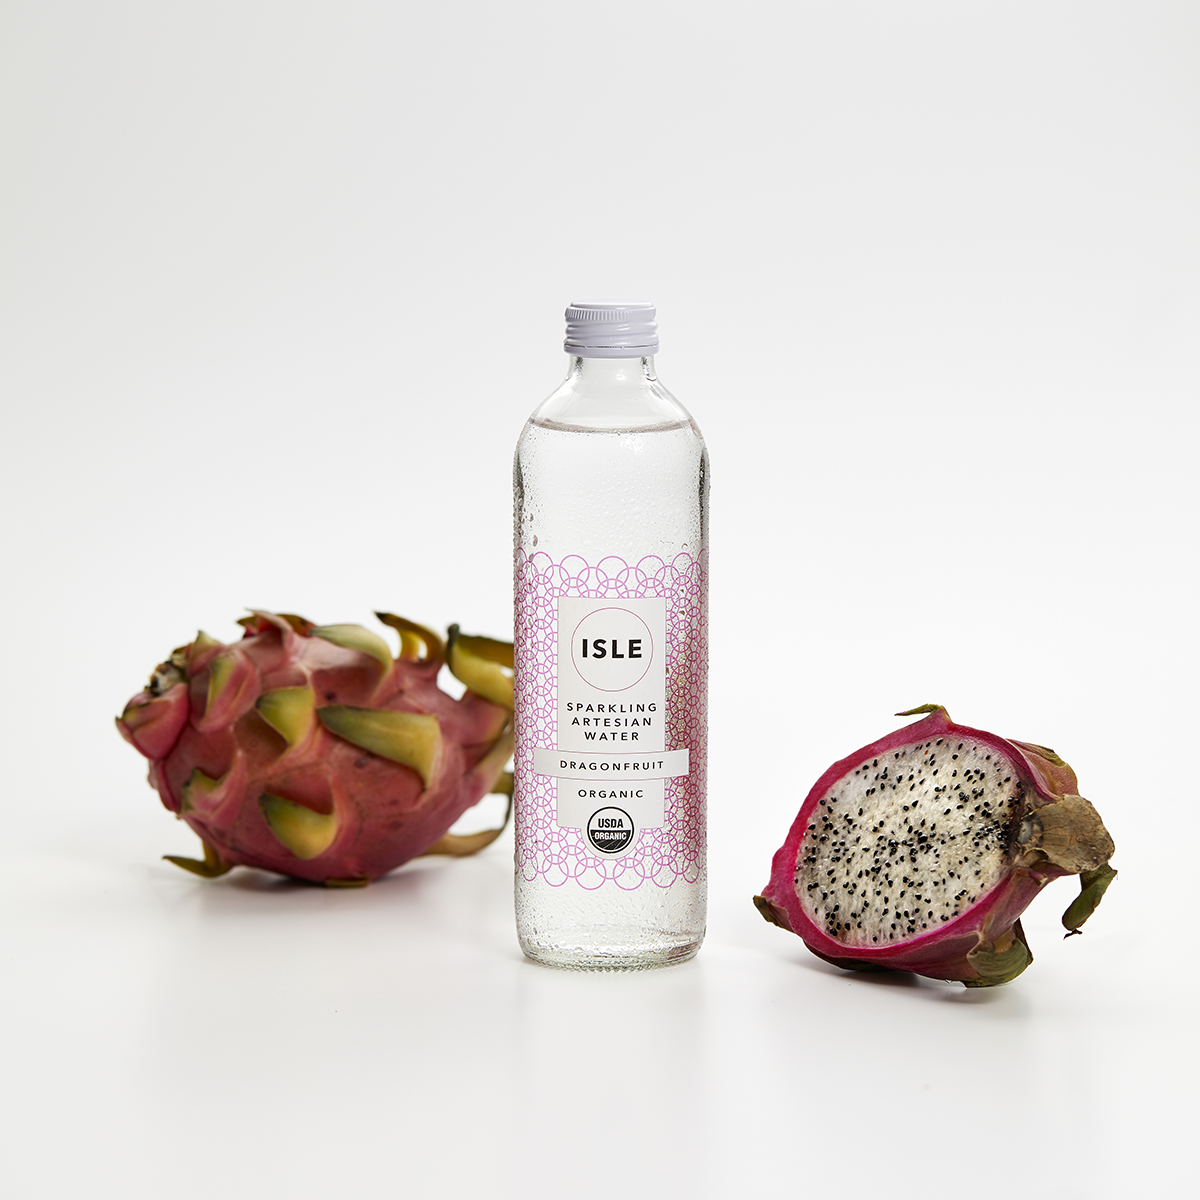 Dragonfruit - Enjoy the sparkling delights of tropical dragonfruit infused in organic New Zealand artesian spring water.